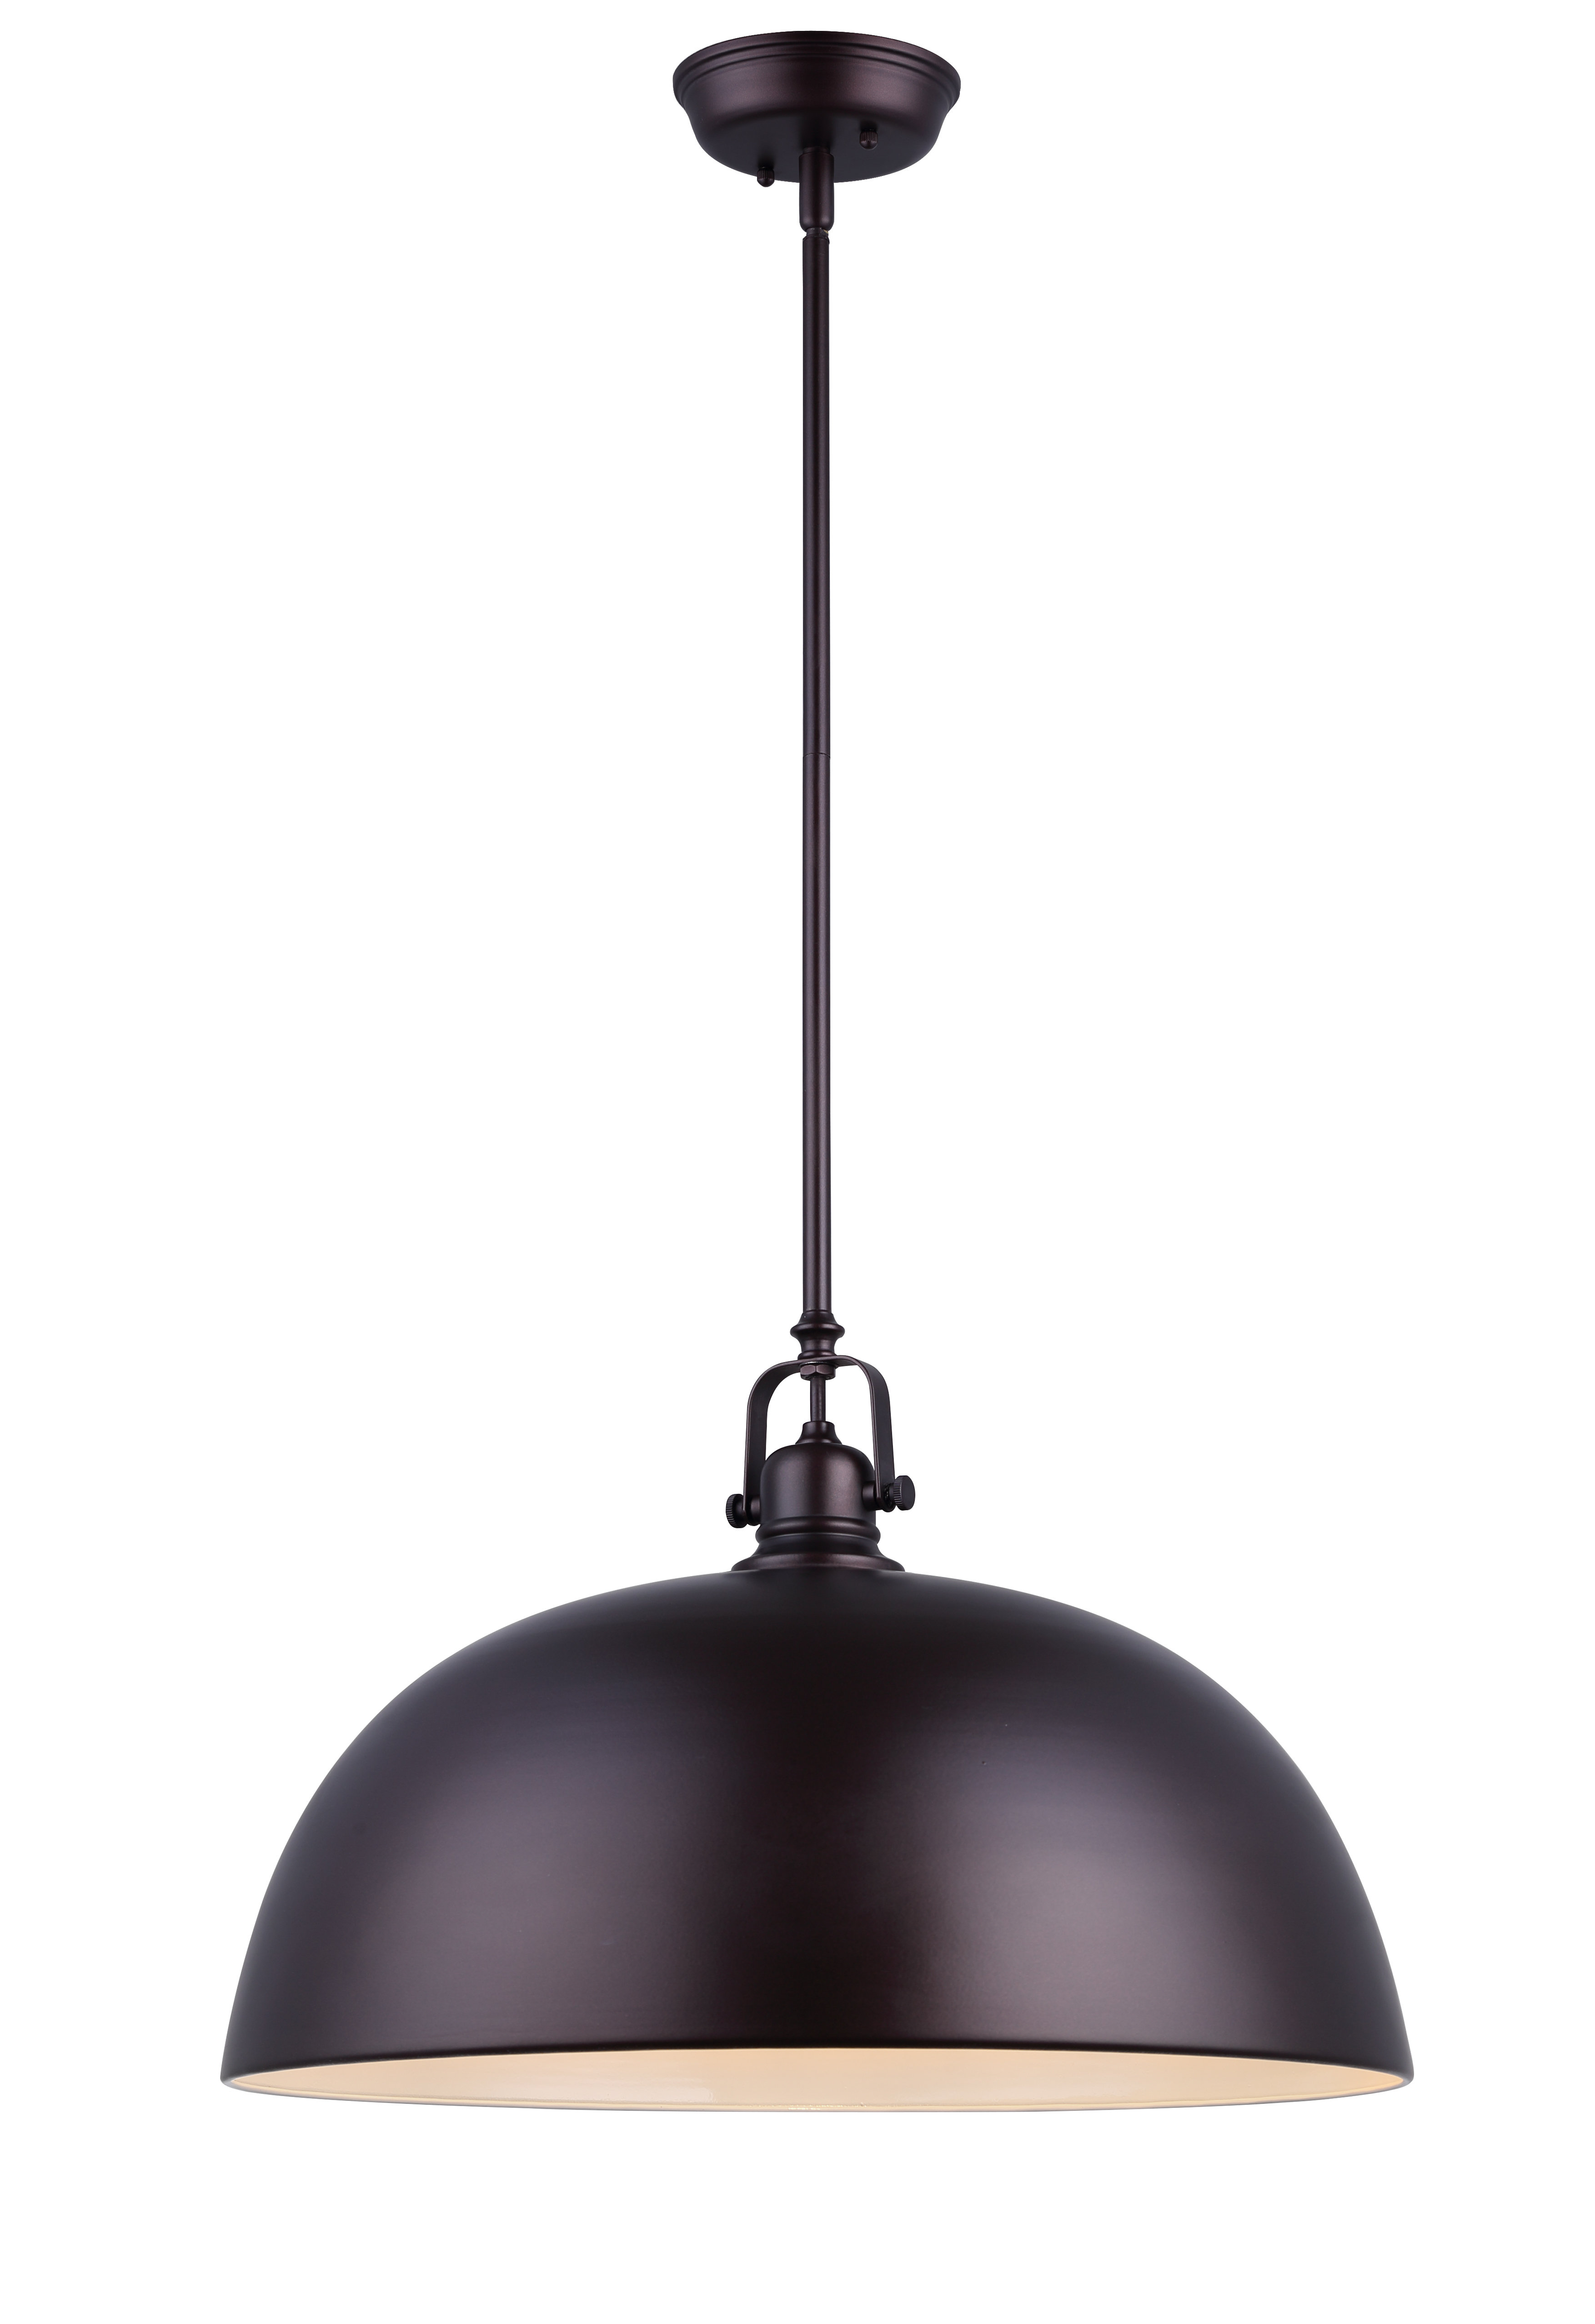 Southlake 1-Light Single Dome Pendant with Conover 1-Light Dome Pendants (Image 27 of 30)